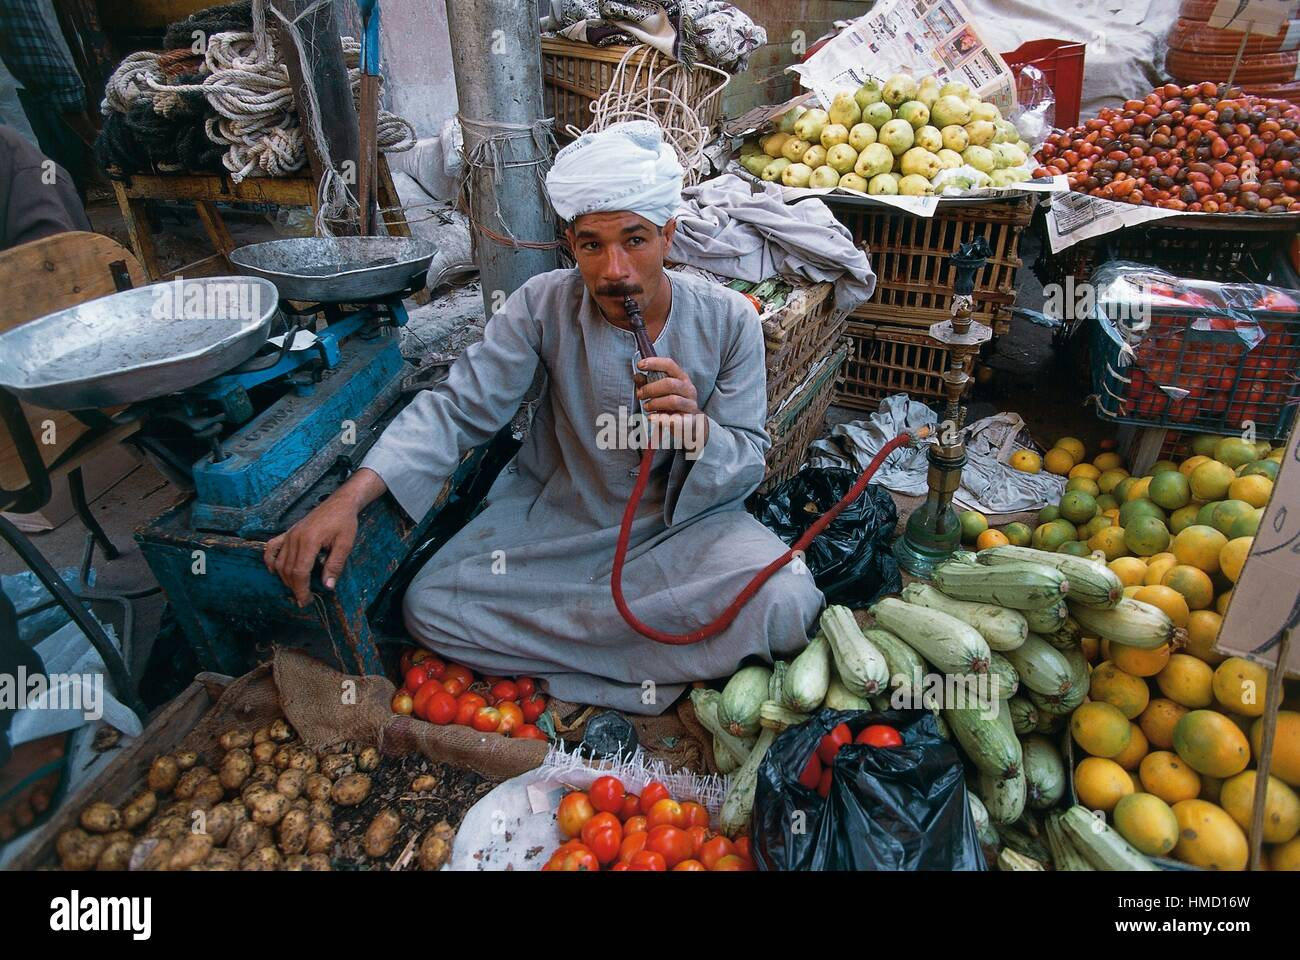 A fruit and vegetable vendor smoking a hookah, market in Luxor, Qena, Egypt. Stock Photo